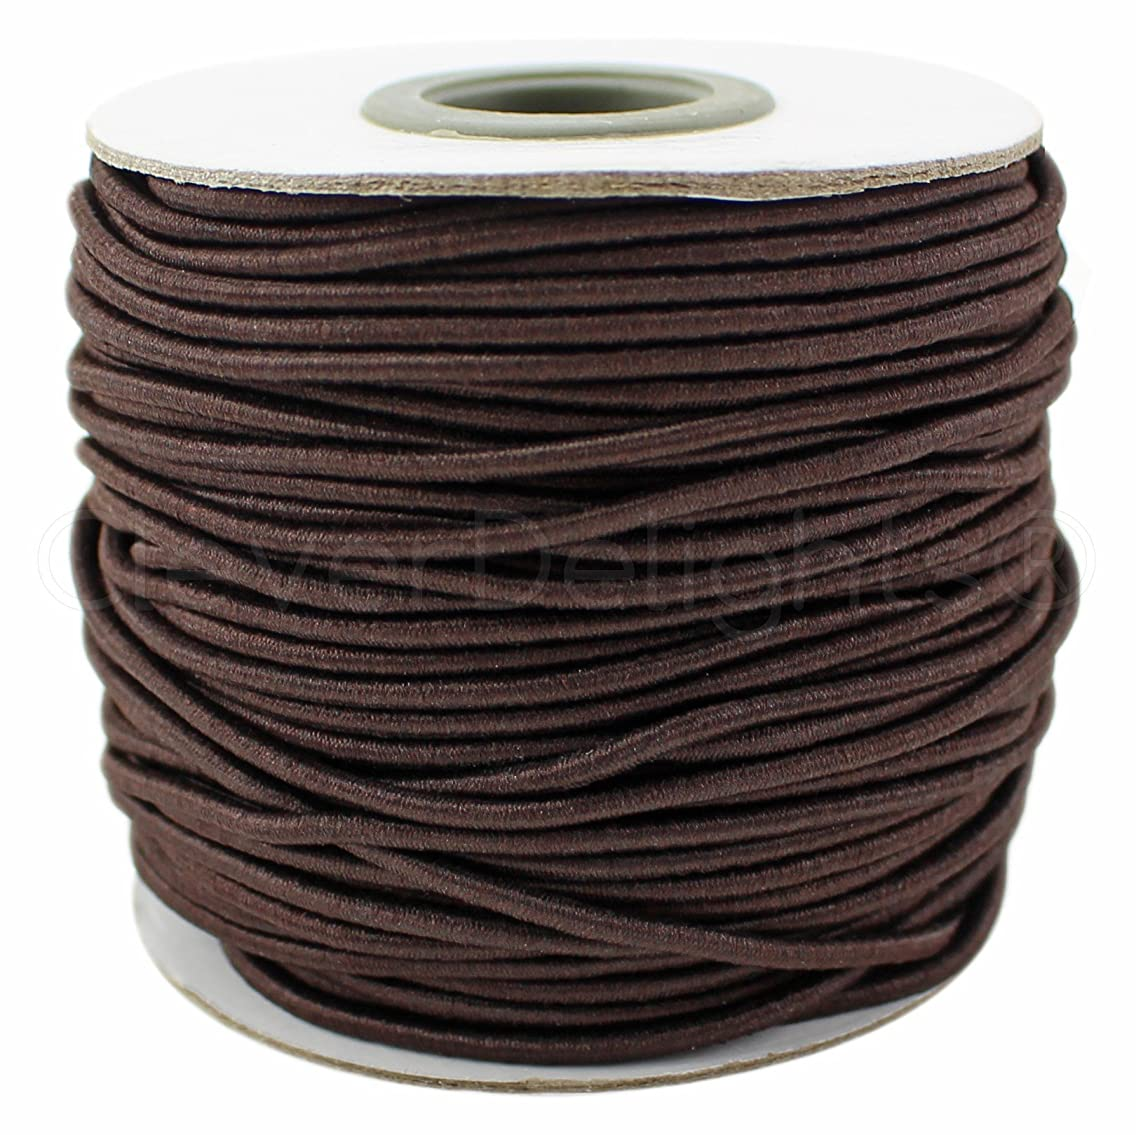 CleverDelights Brown Fabric Elastic Cord - 44 Yards - 2mm - Crafts Beading Jewelry Stretch Shock Cording